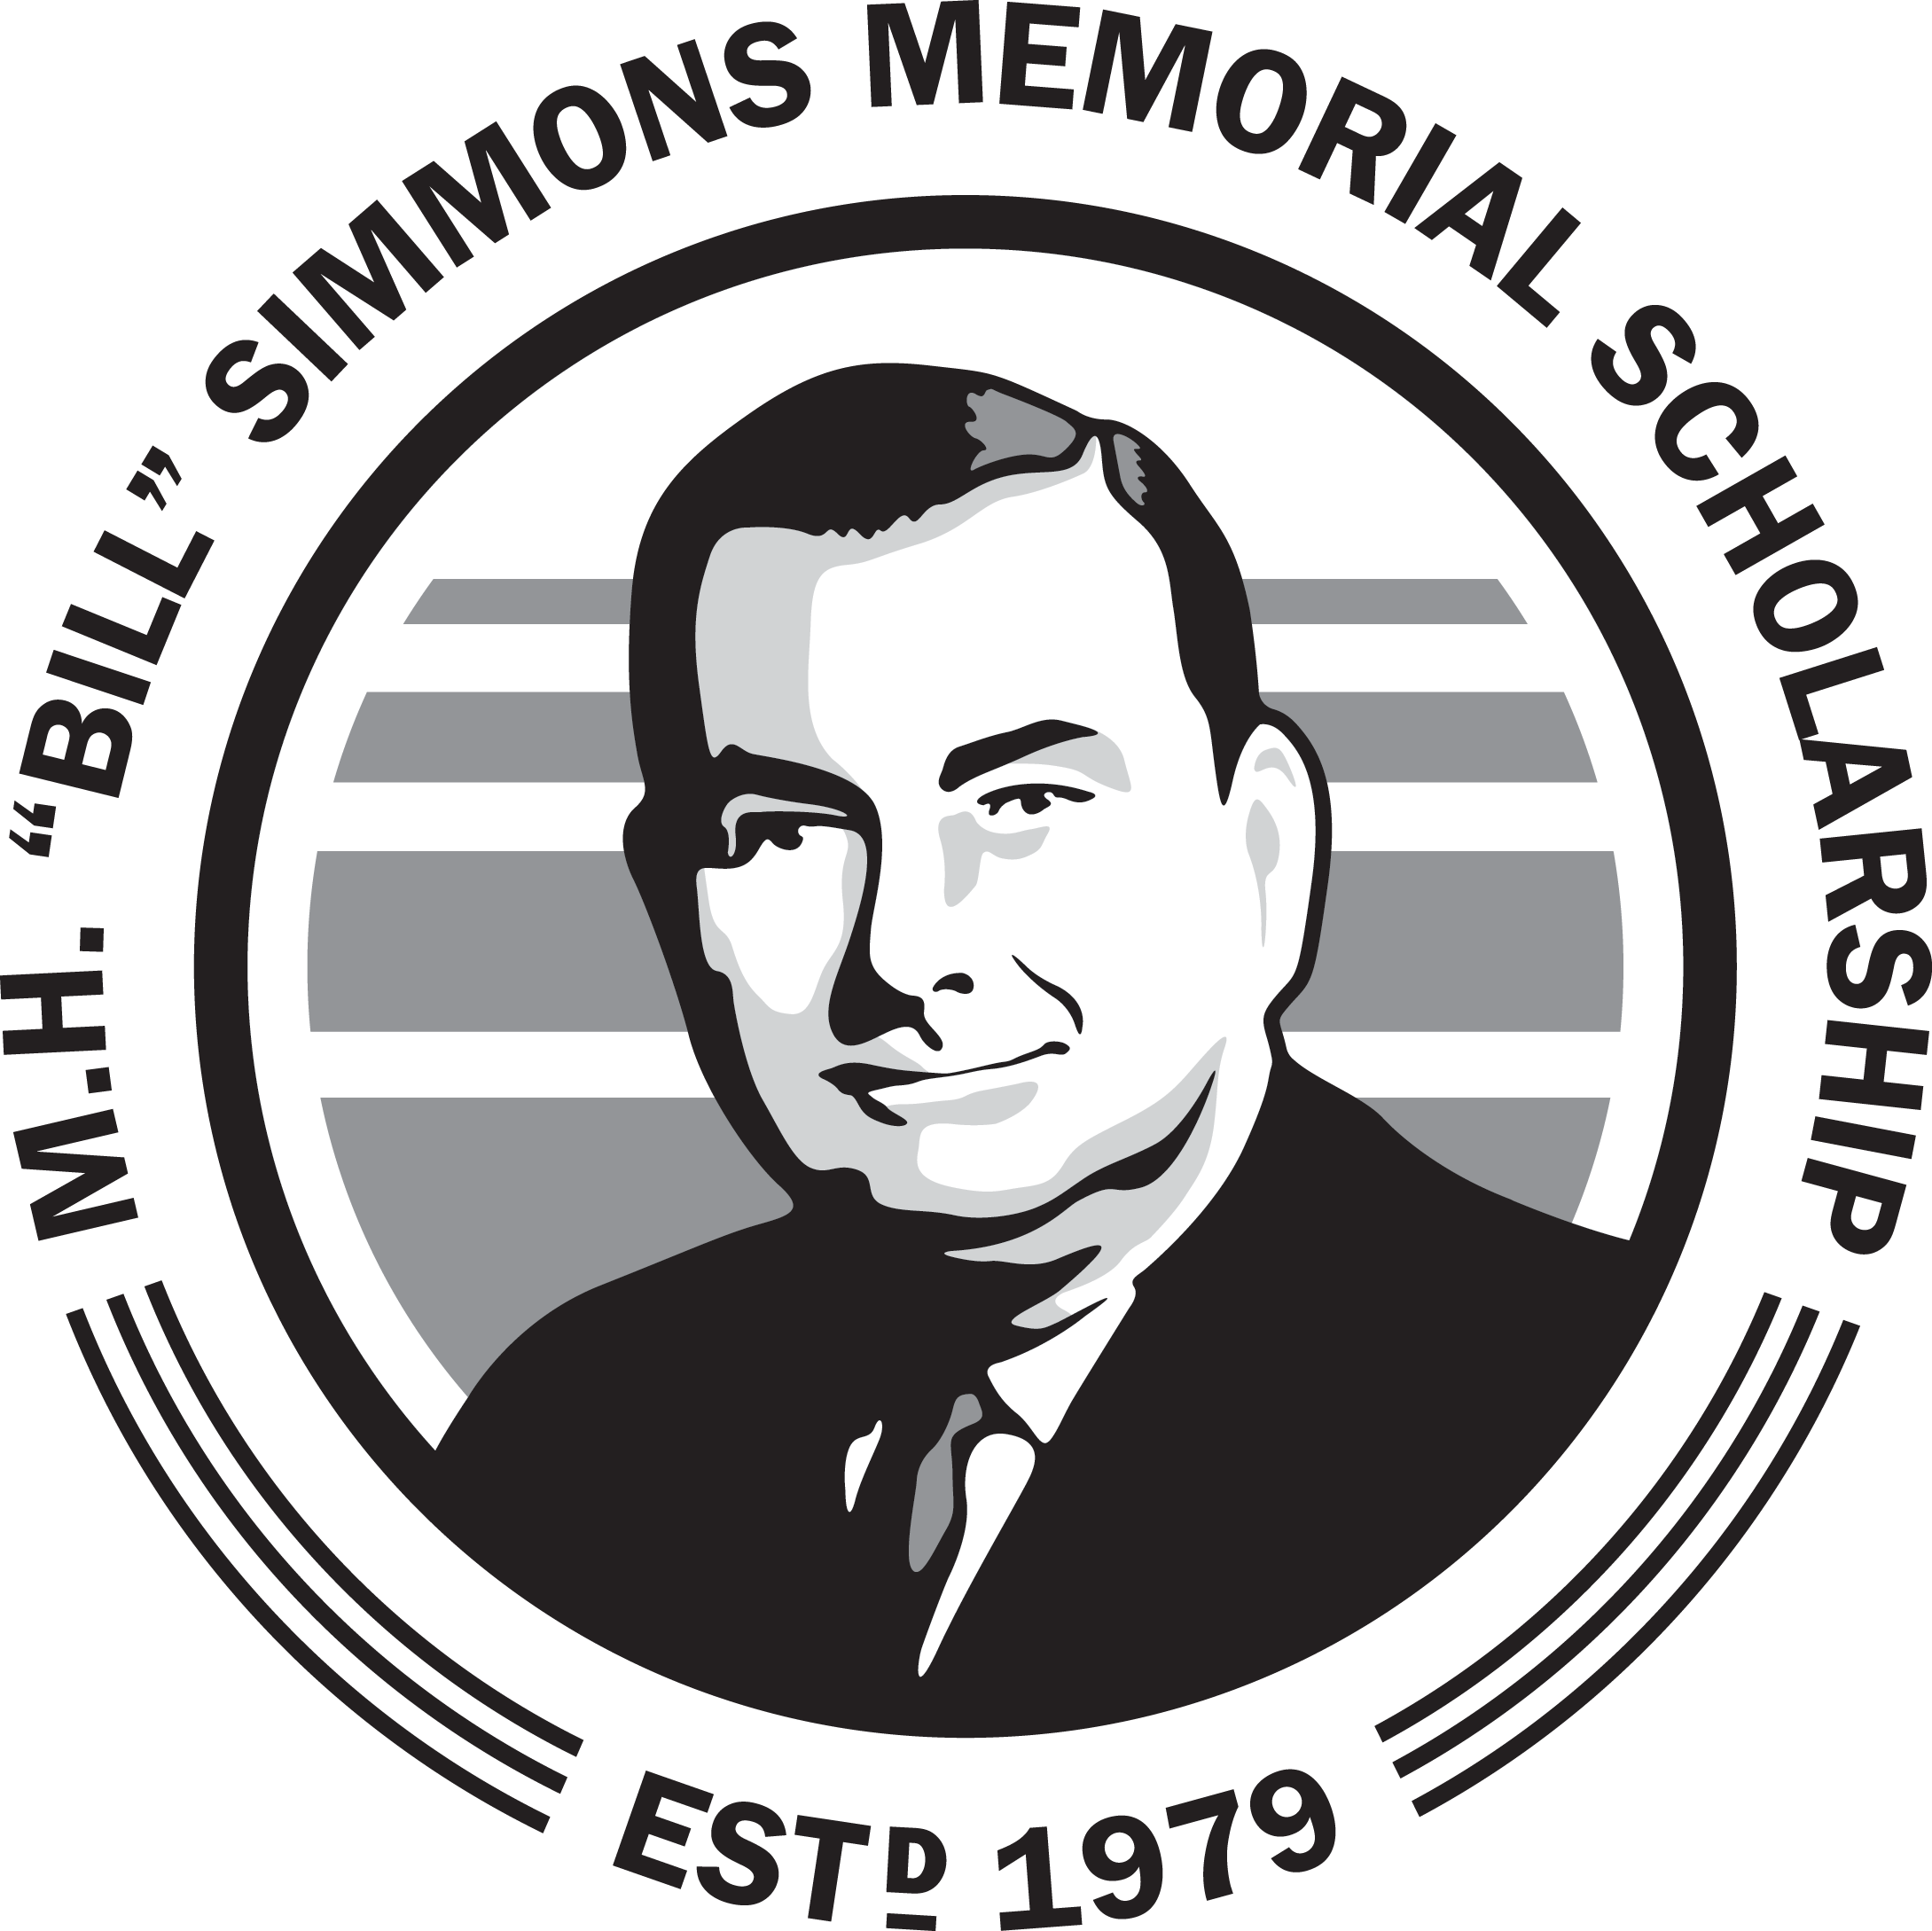 ART_WH Bill Simmons Memorial Scholarship_SIMMONS_V1.png